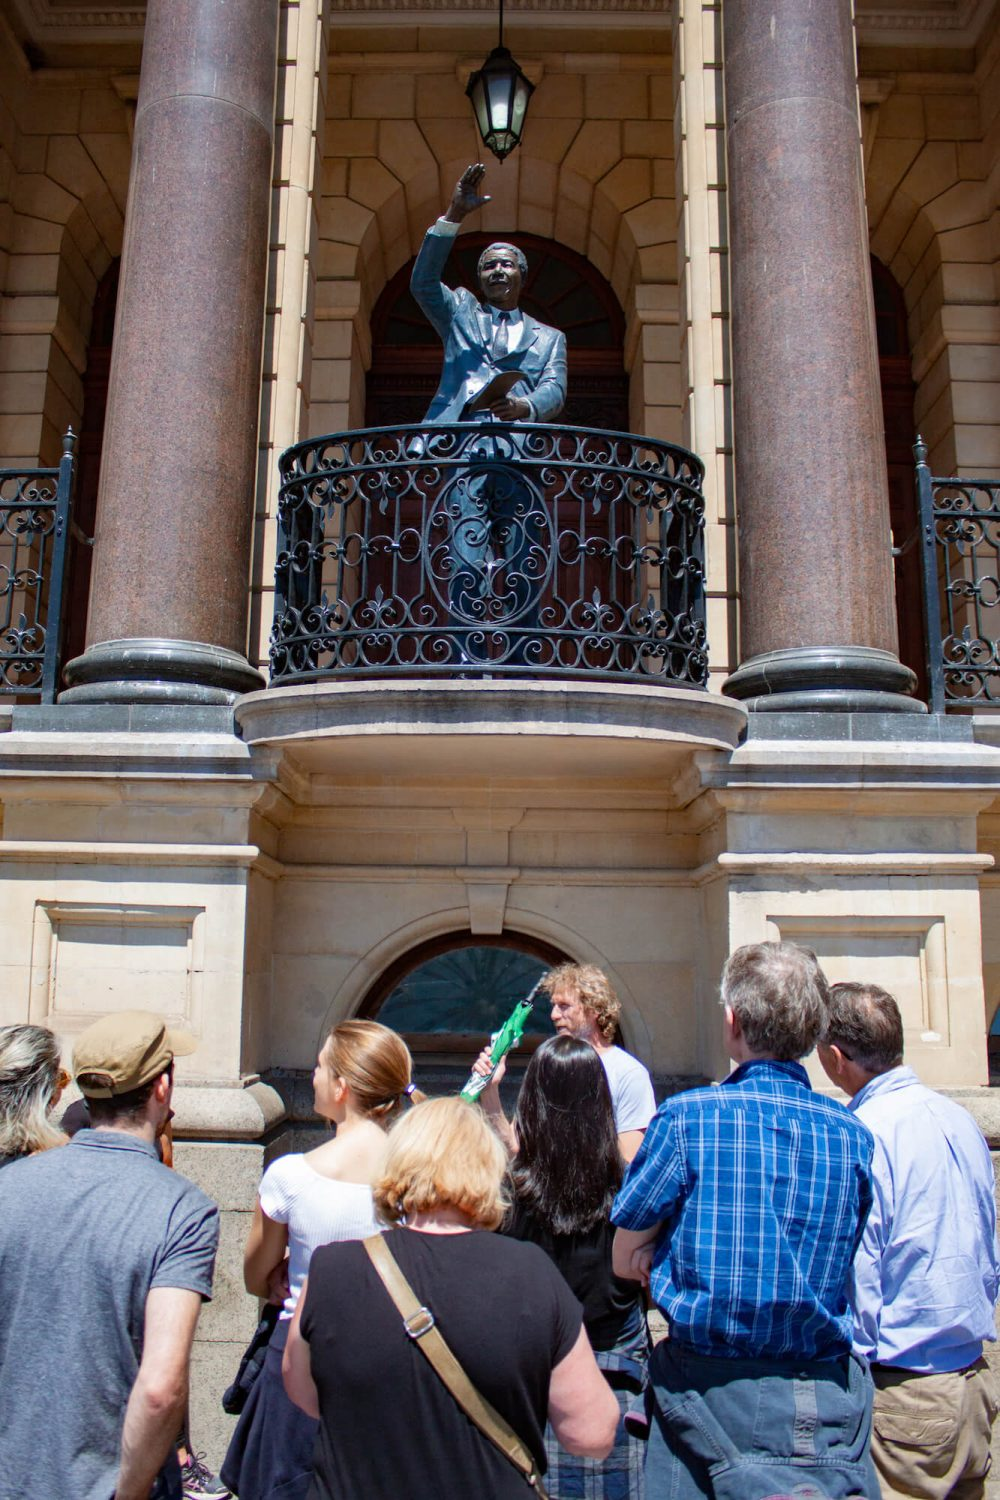 Walking tour and Nelson Mandela statue